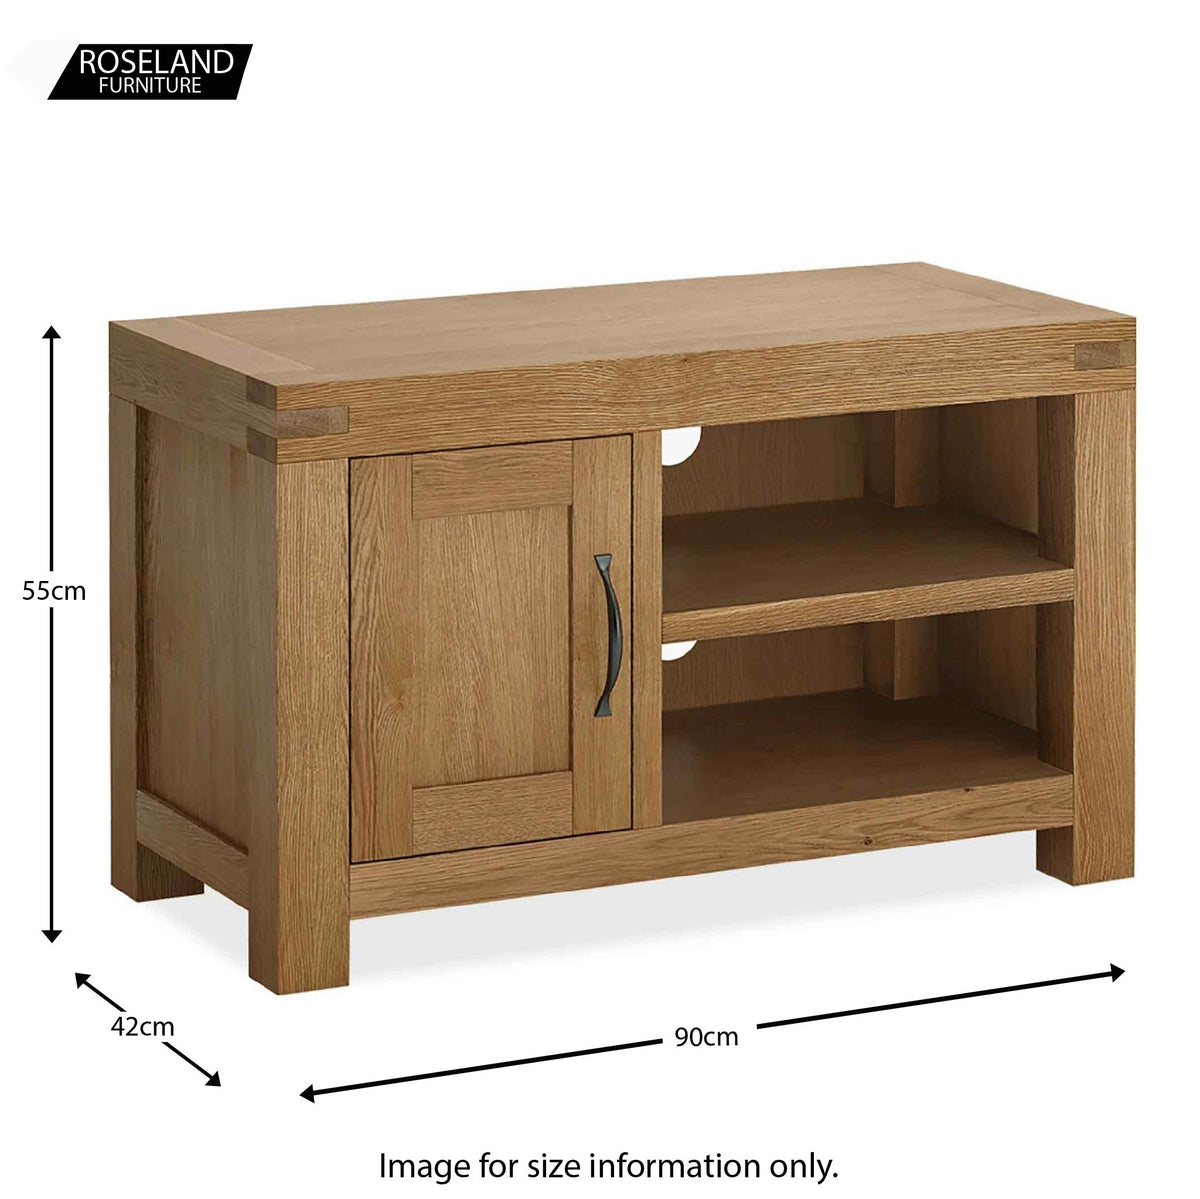 Abbey Grande 90cm Oak Small TV Stand - Size guide